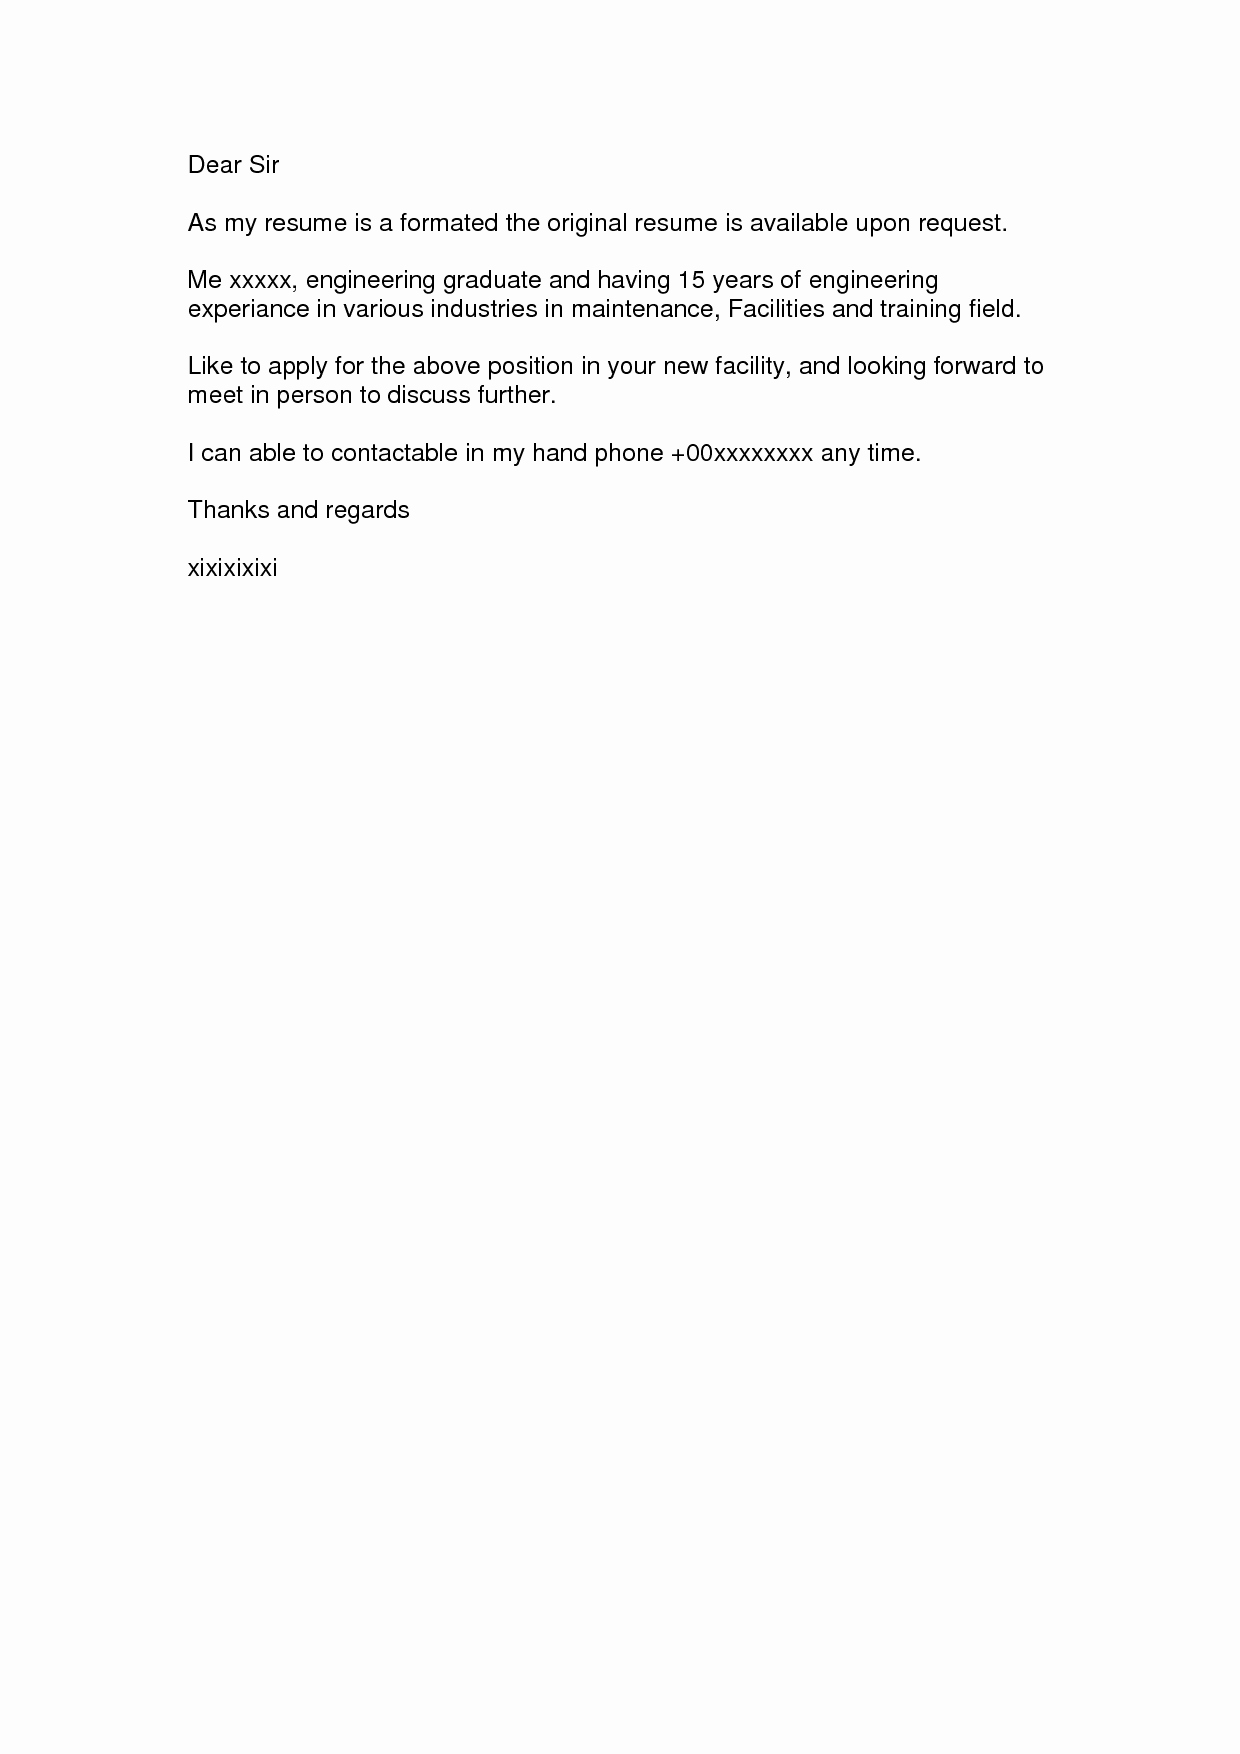 Simple Cover Letter format Unique Simple Cover Letter Easy Template Pix Widescreensimple